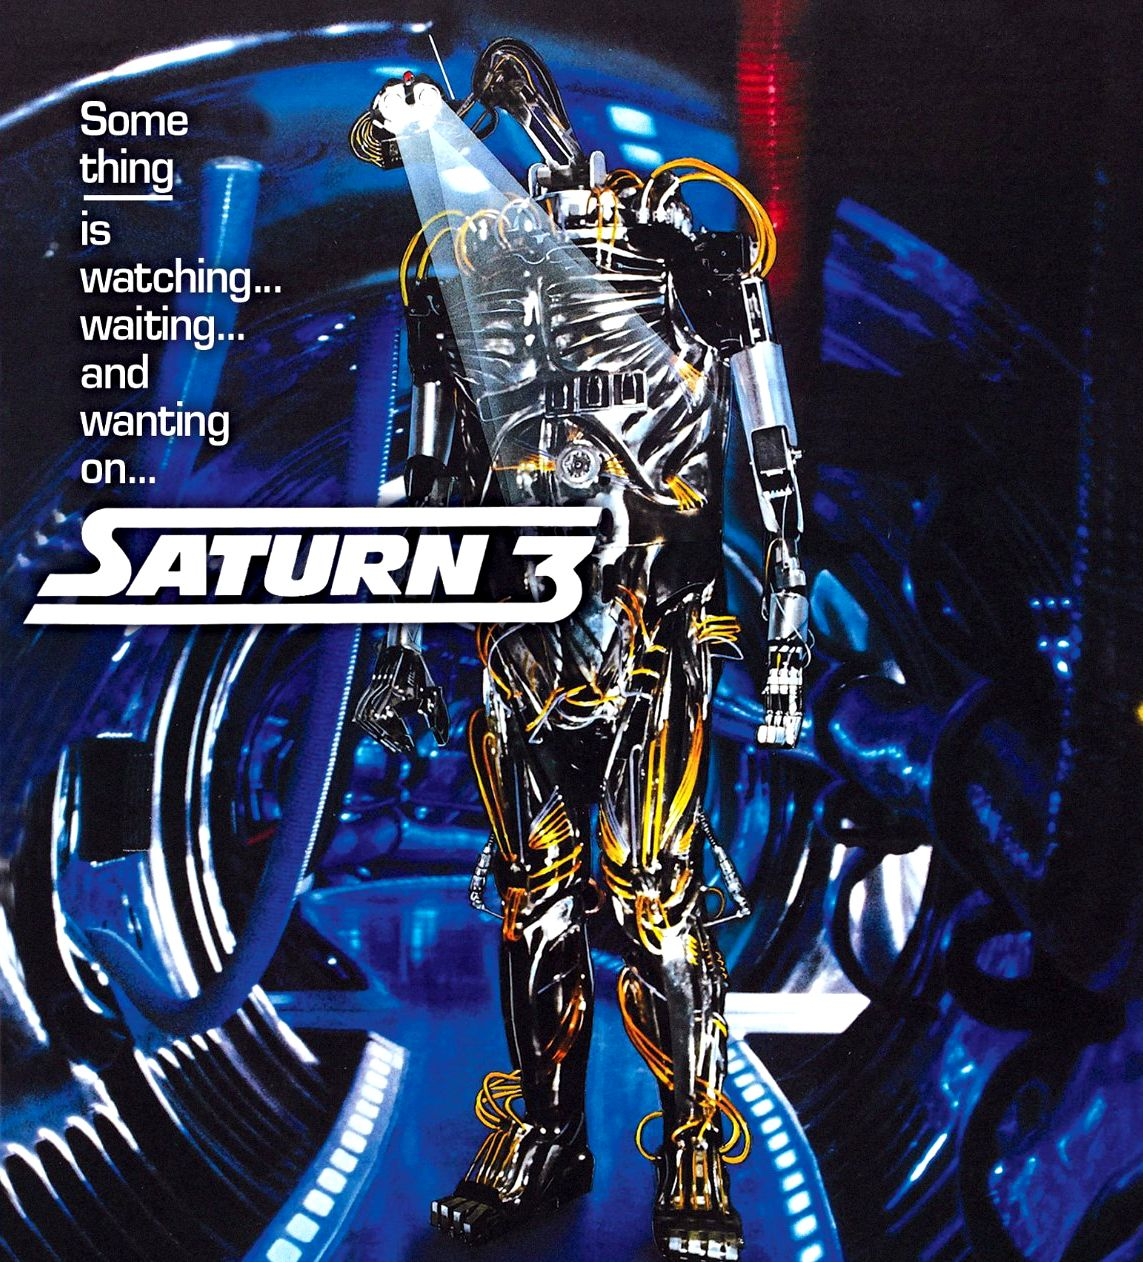 Image result for saturn 3 movie poster